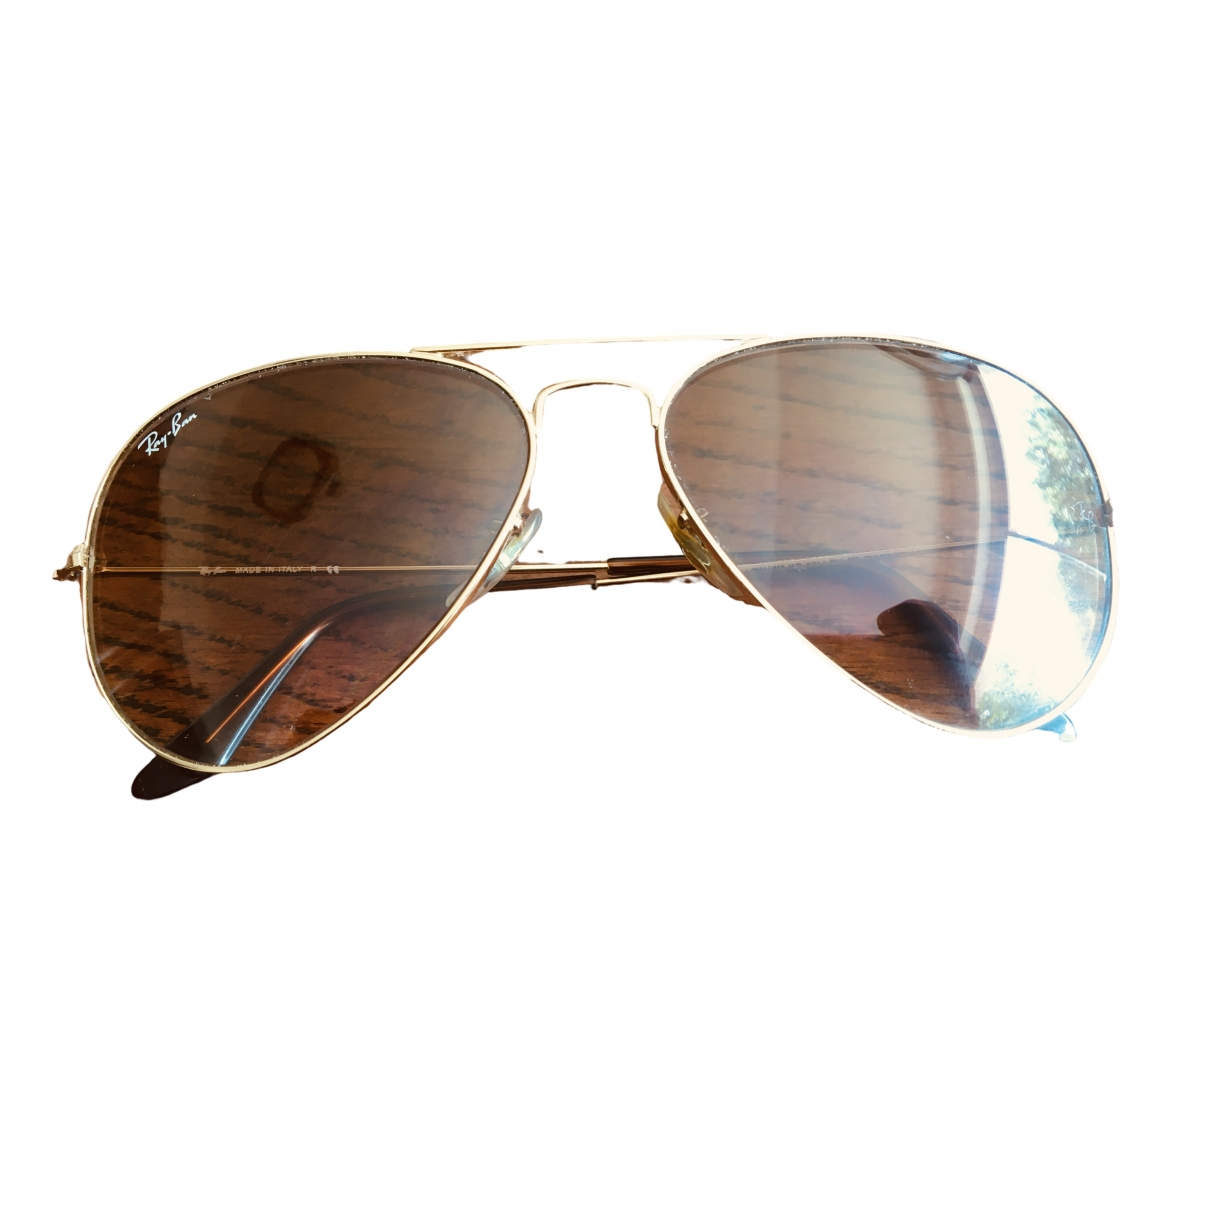 Ray-ban Aviator Sonnenbrillen in  Gold Metall